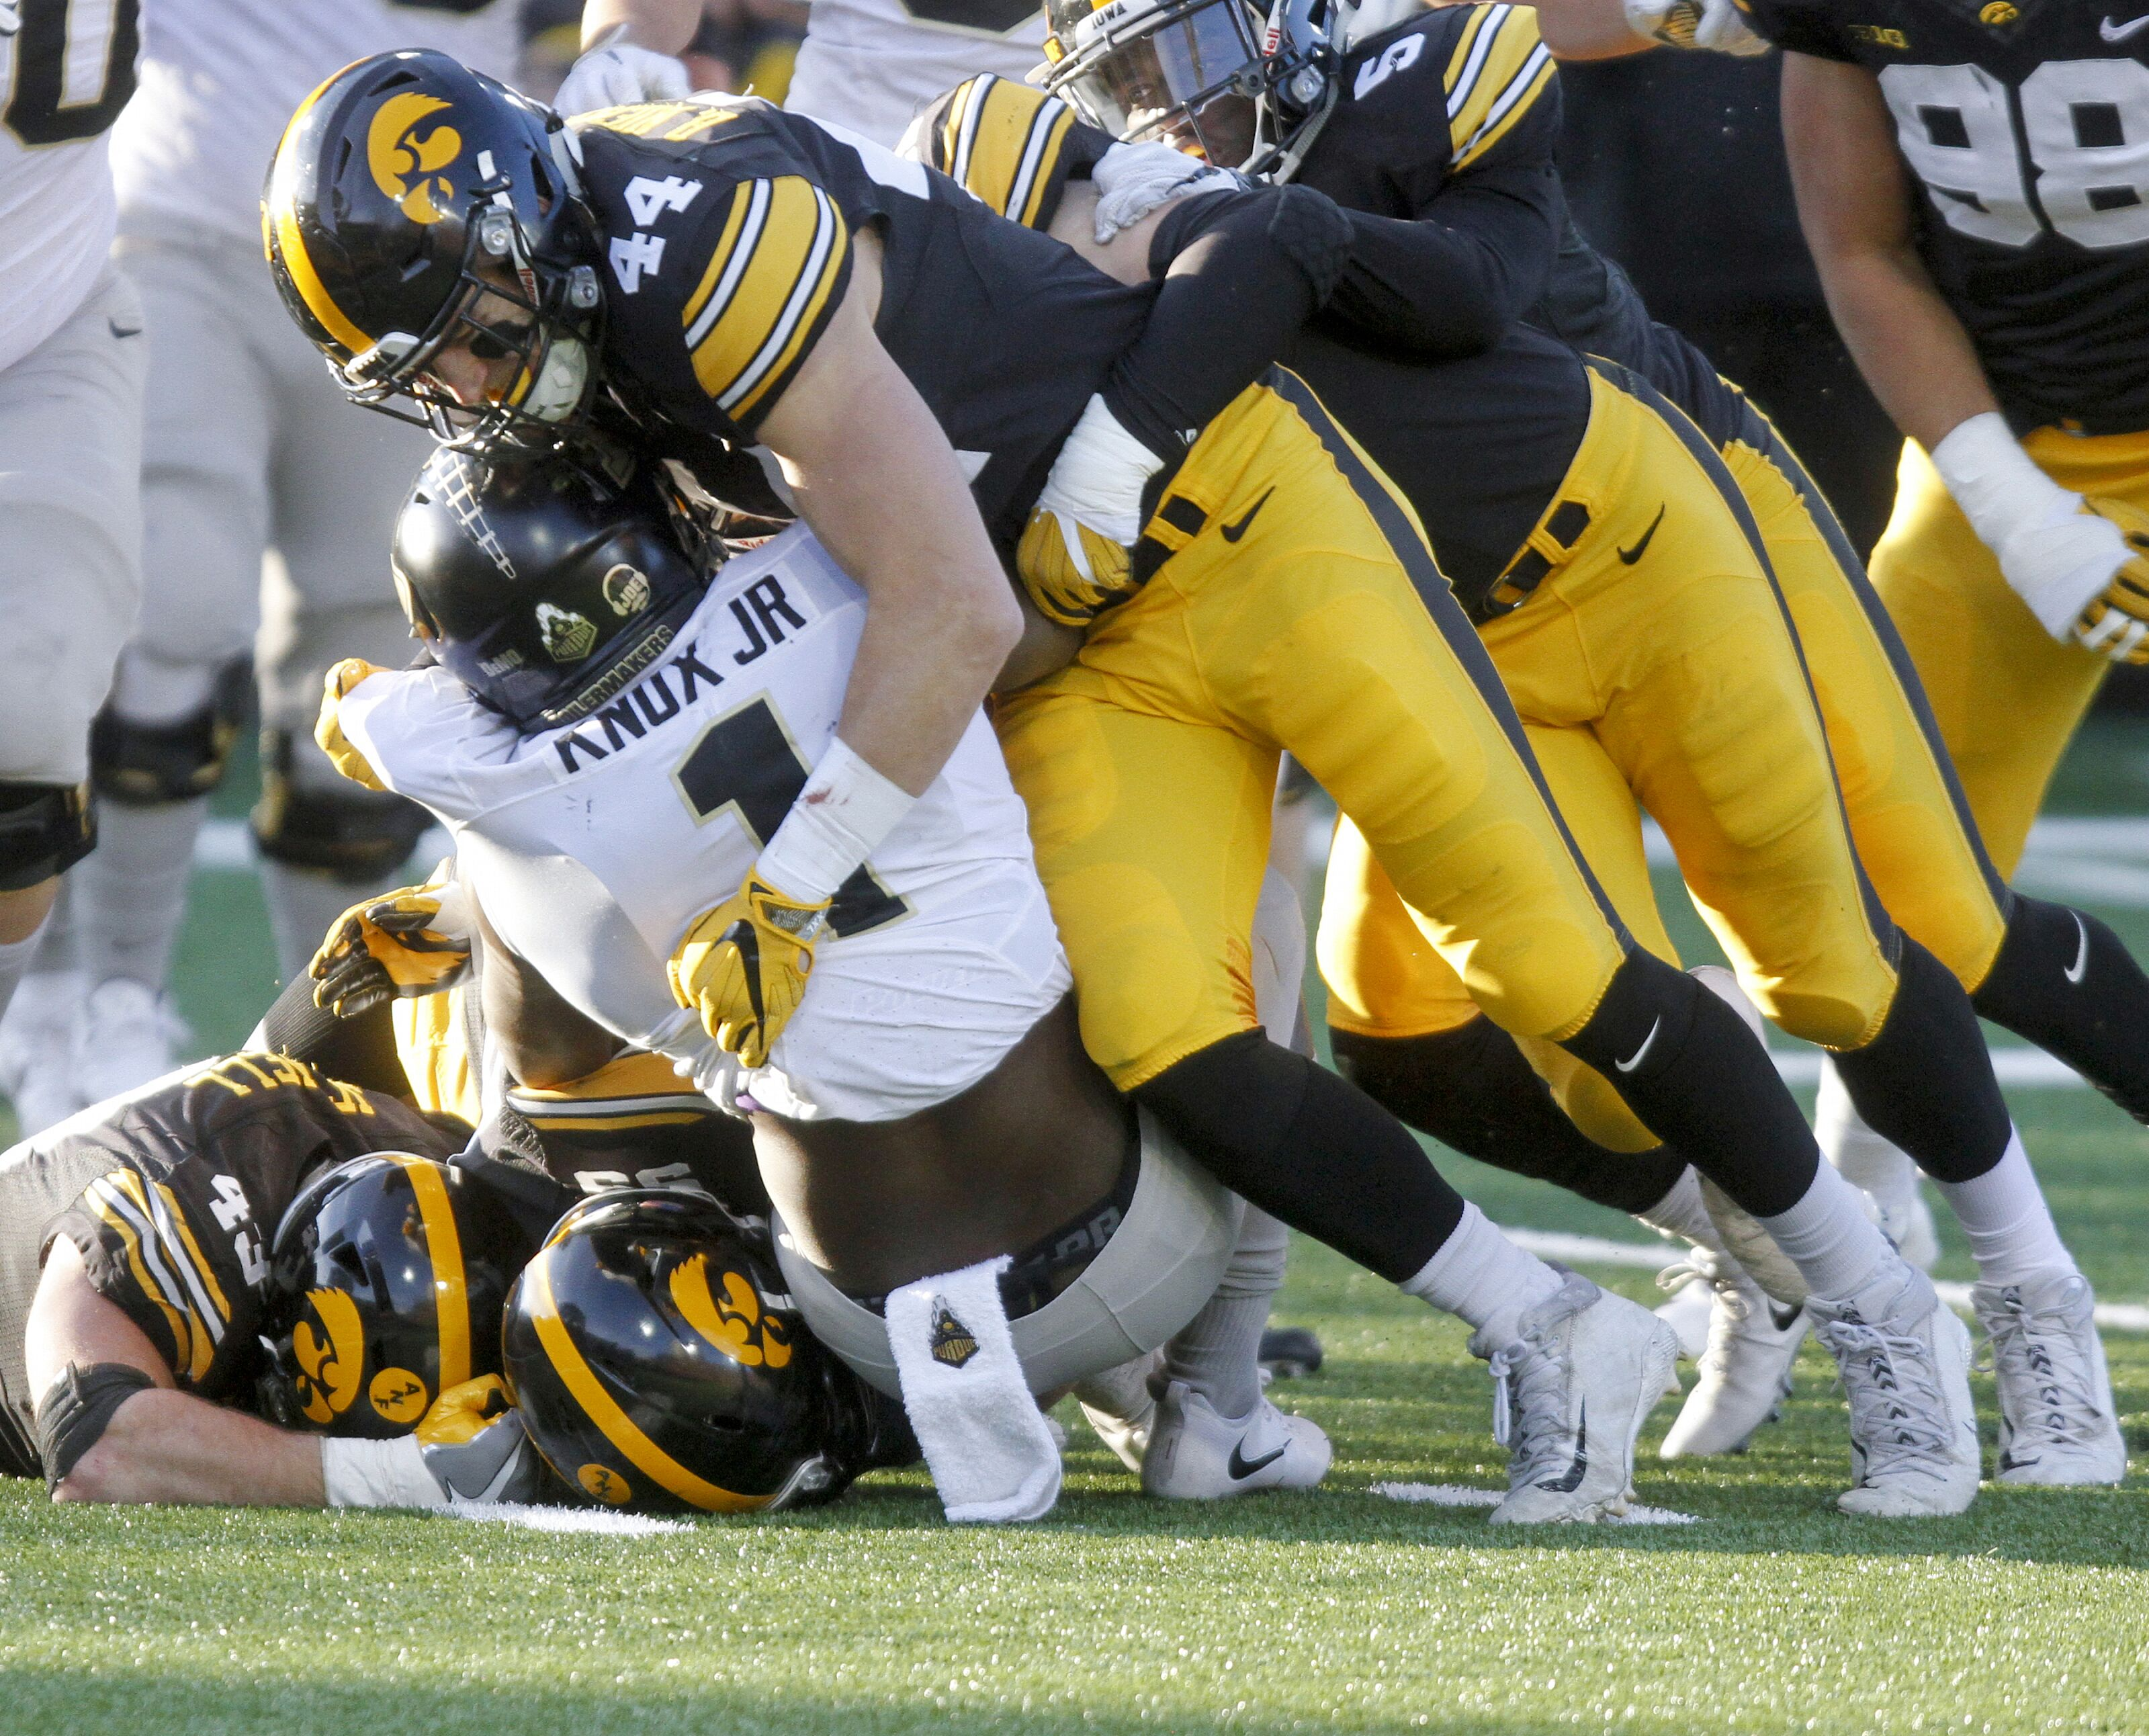 Iowa City November 18 Running Back D J Knox 1 Of The Purdue Boilermakers Is Brought Down In Second Quarter By Linebacker Ben Niemann 44